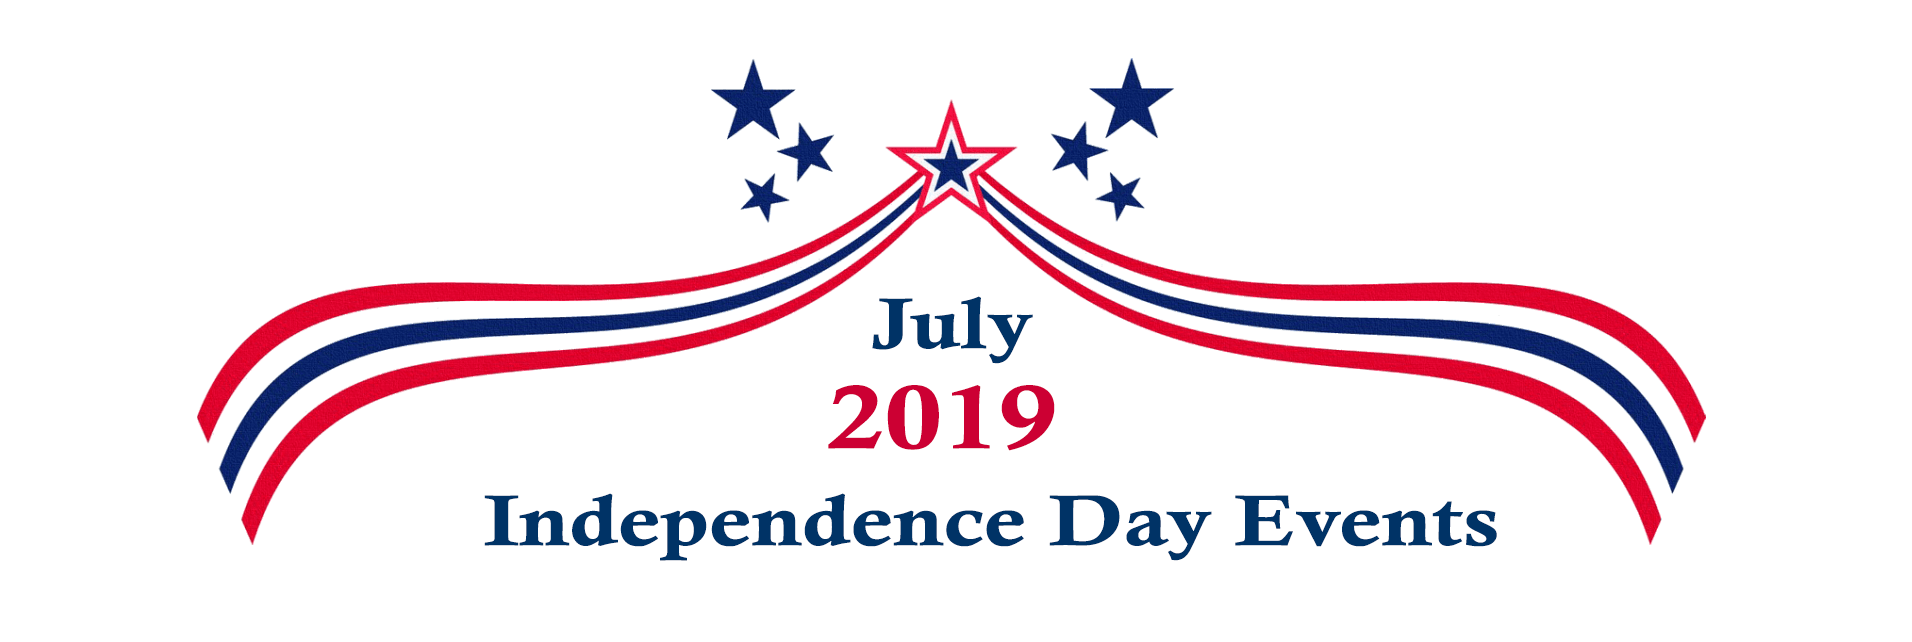 Independence Day Events 2019